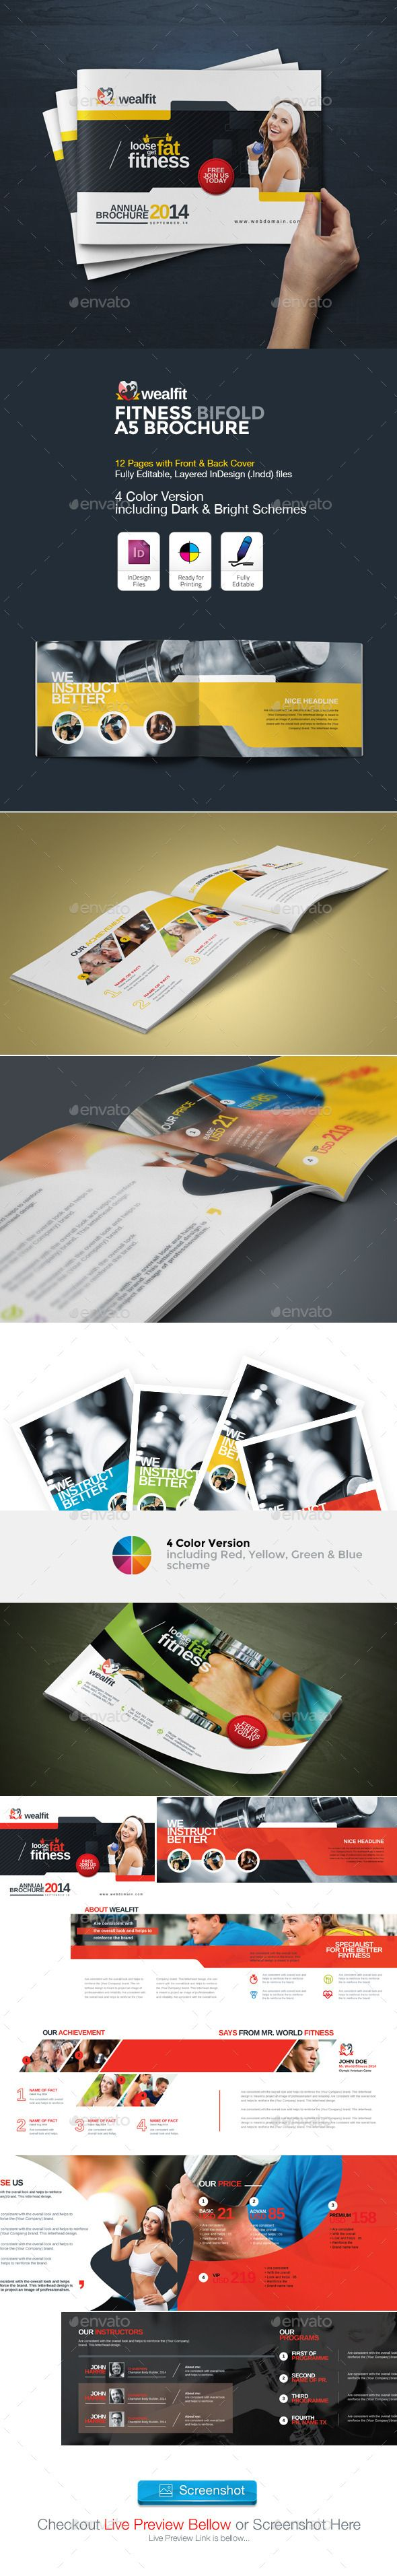 WealFit | Fitness - Gym Bifold A5 Brochure — InDesign Template ...